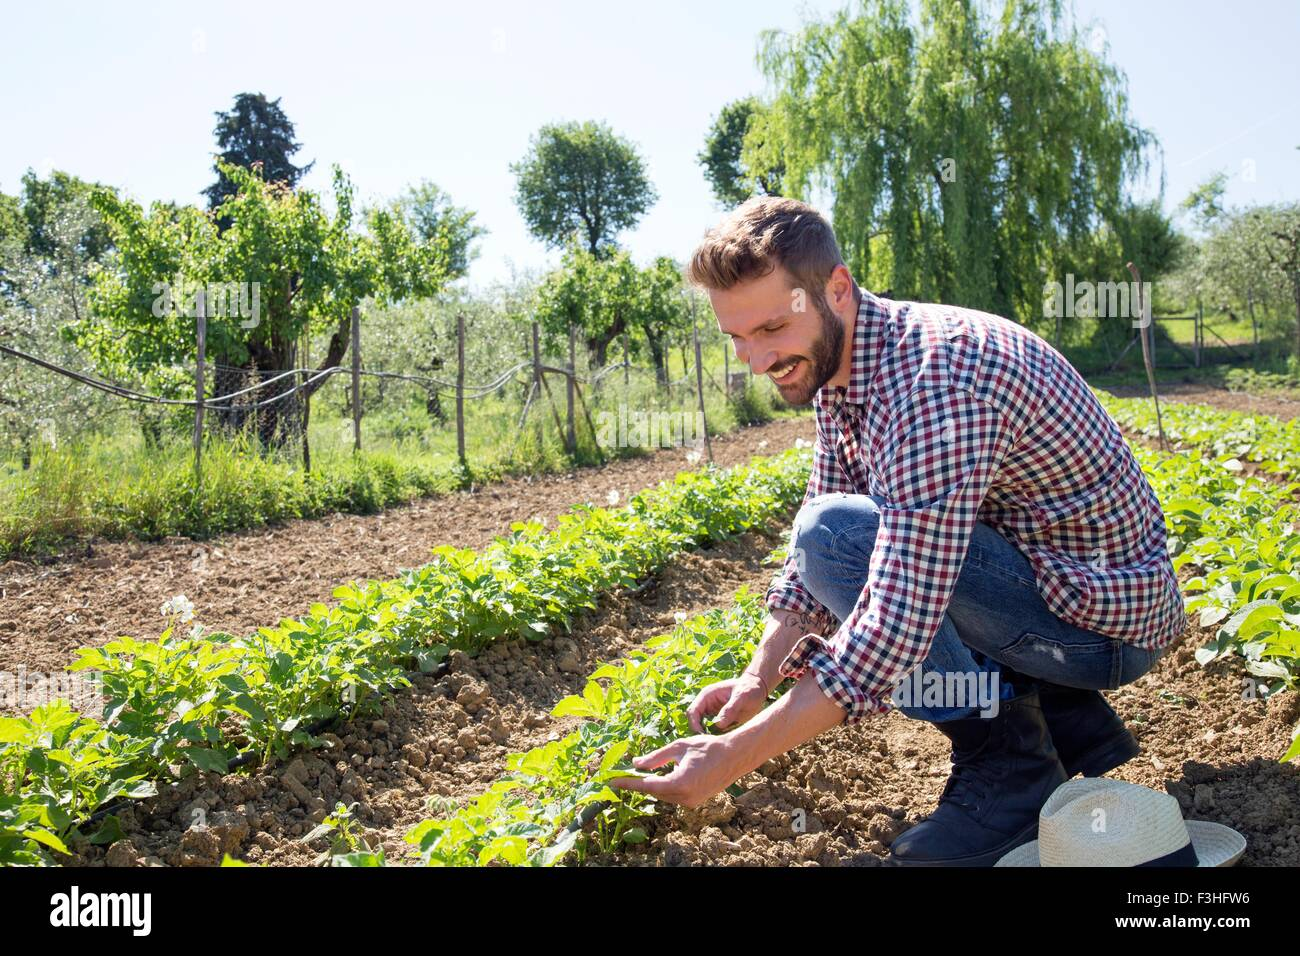 Young man crouched in field tending to tomato plants - Stock Image